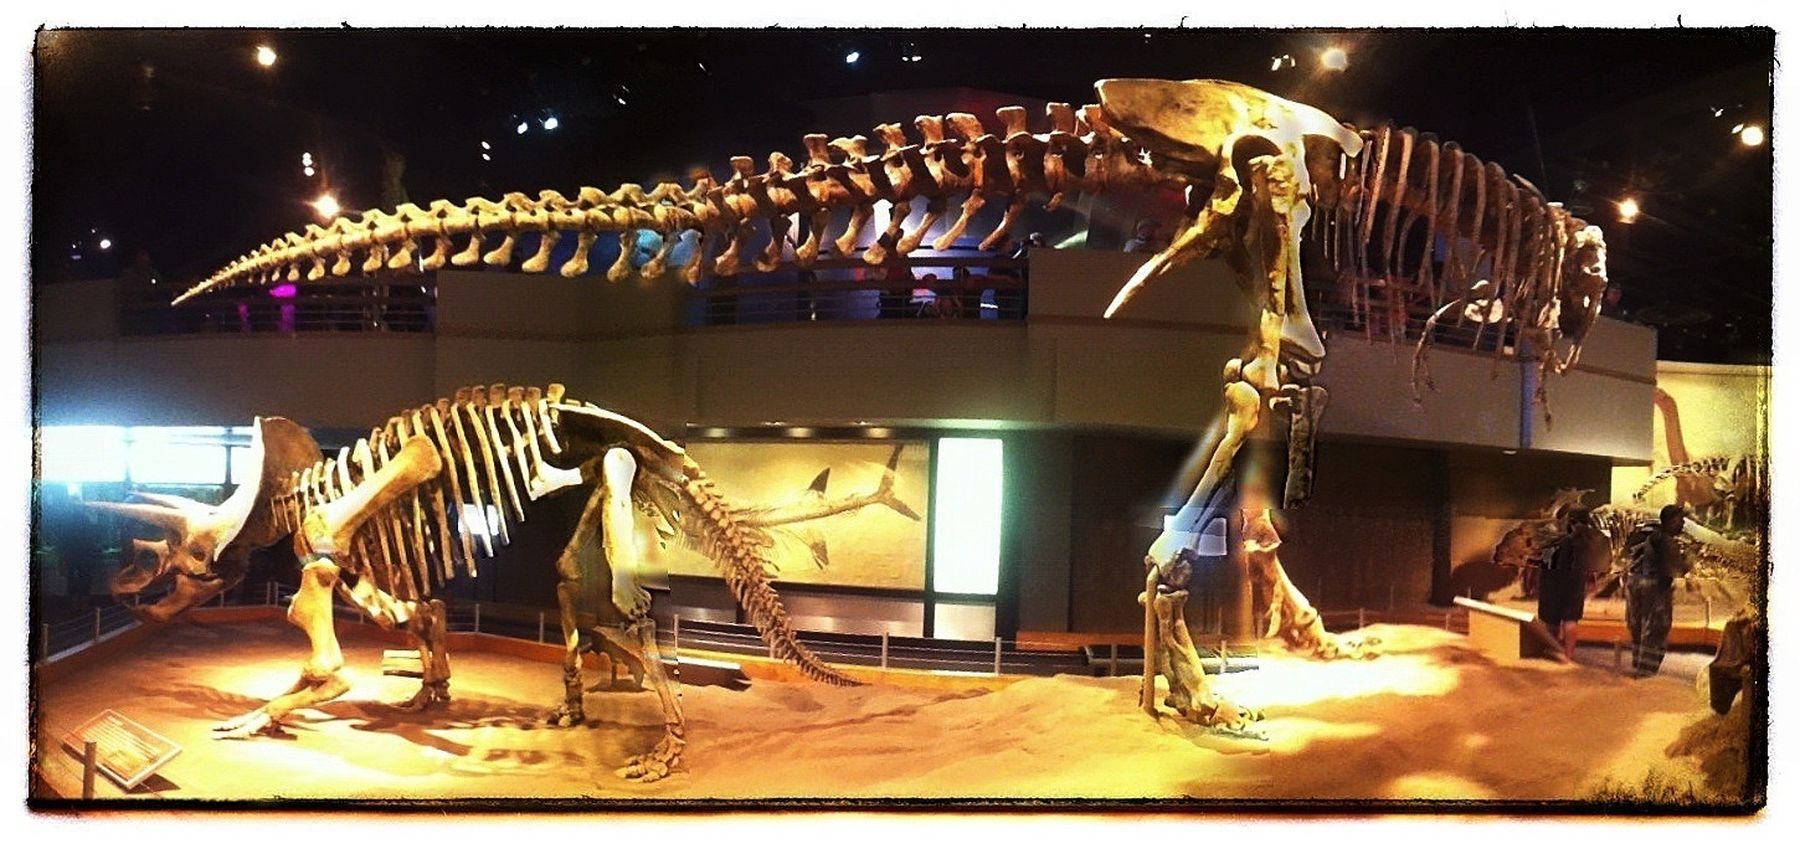 Panoramic of T-Rex and Triceratops. IPhoneography Photography Dinosaurs Alberta